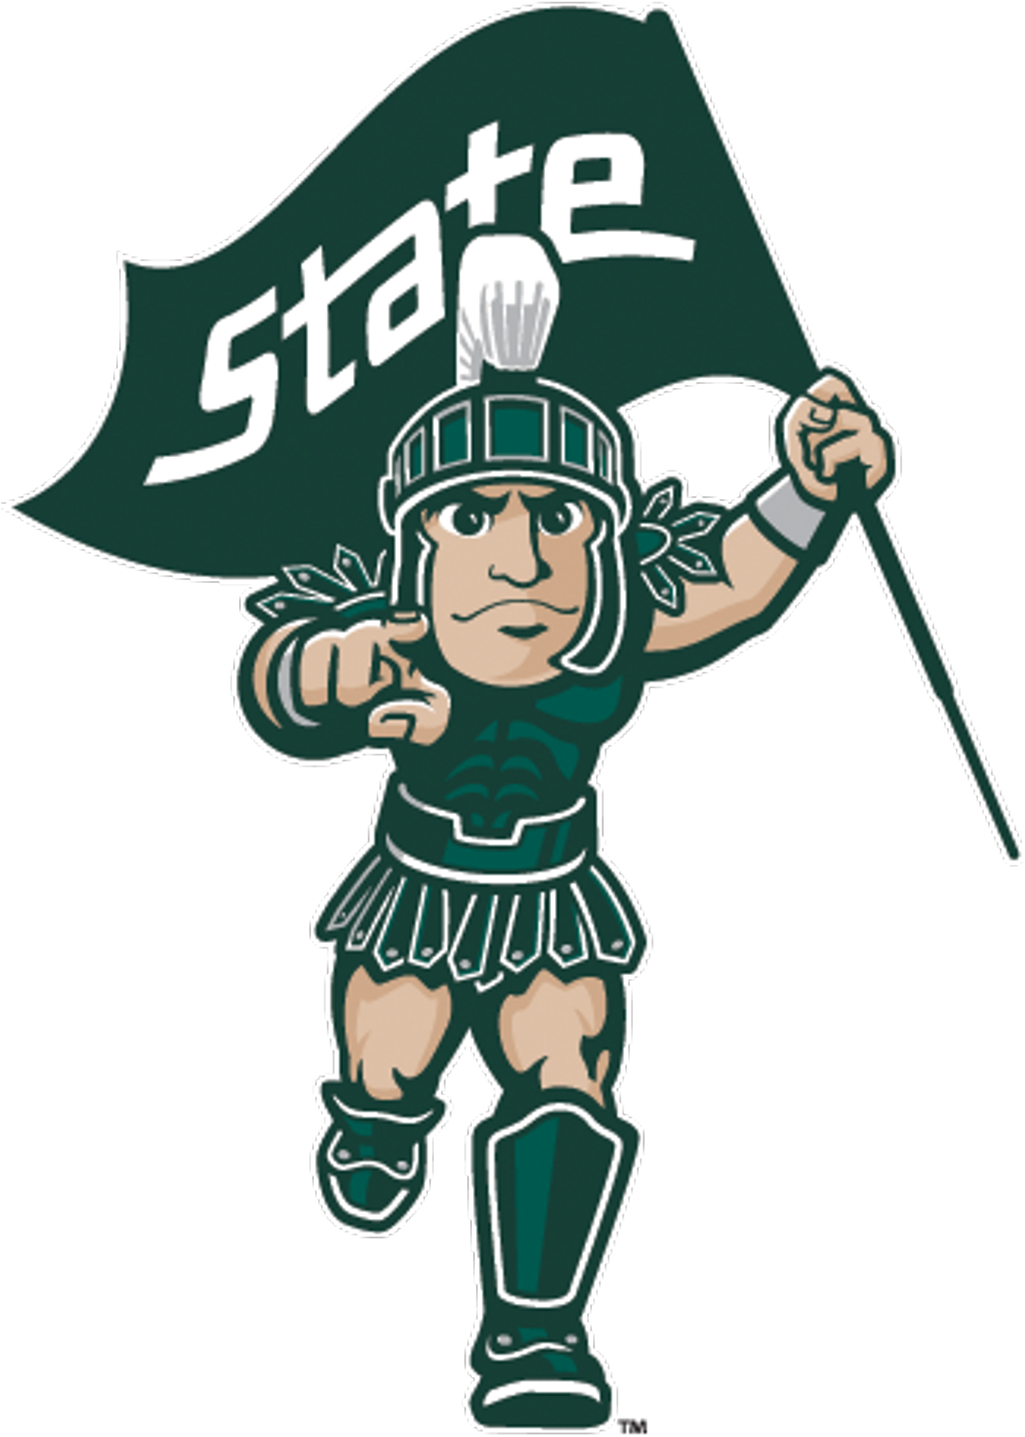 michiganstate #sparty #cartoon #logo #mascot #msu.